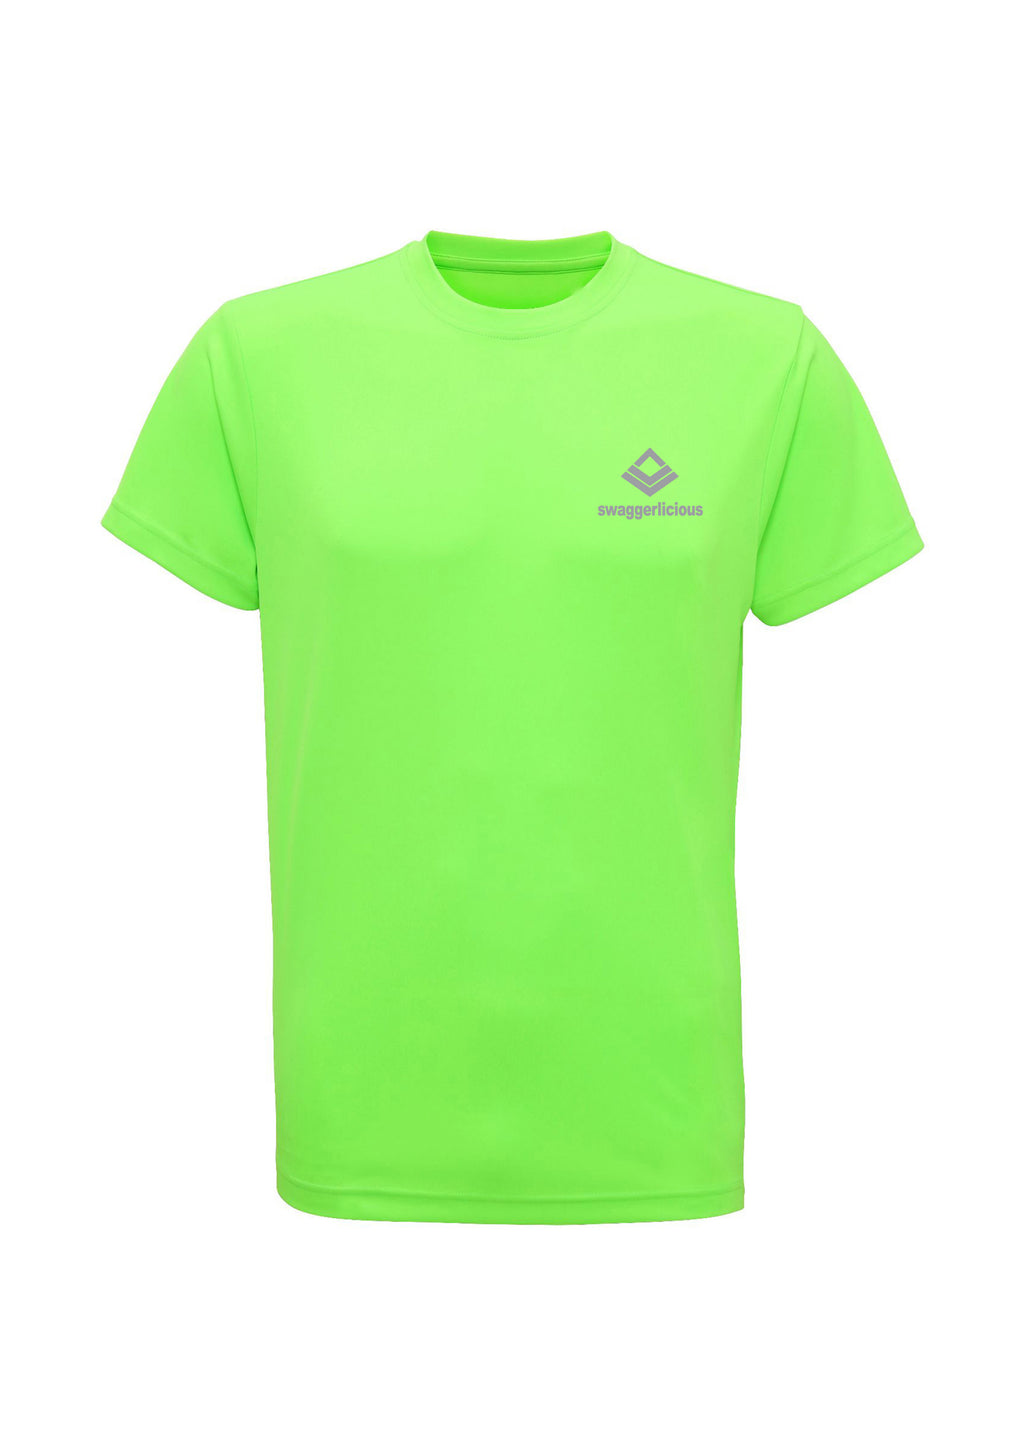 Fluorescent Green Swaggerlicious Quick Dry Active T-Shirt with Silver Logo - swaggerlicious-clothing.com